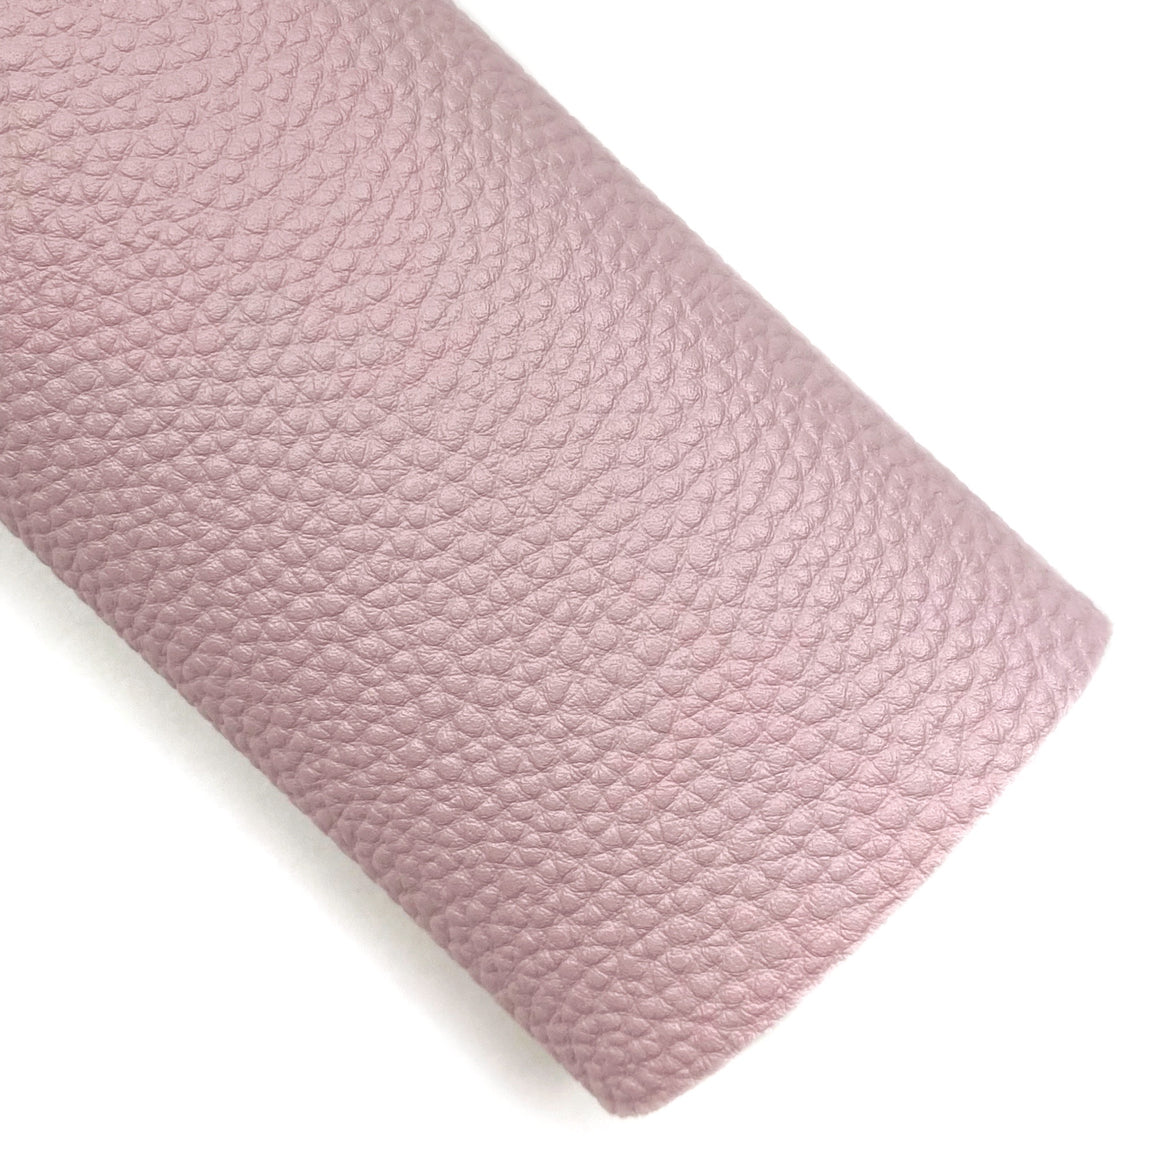 Blushed Pebbled Vegan Leather